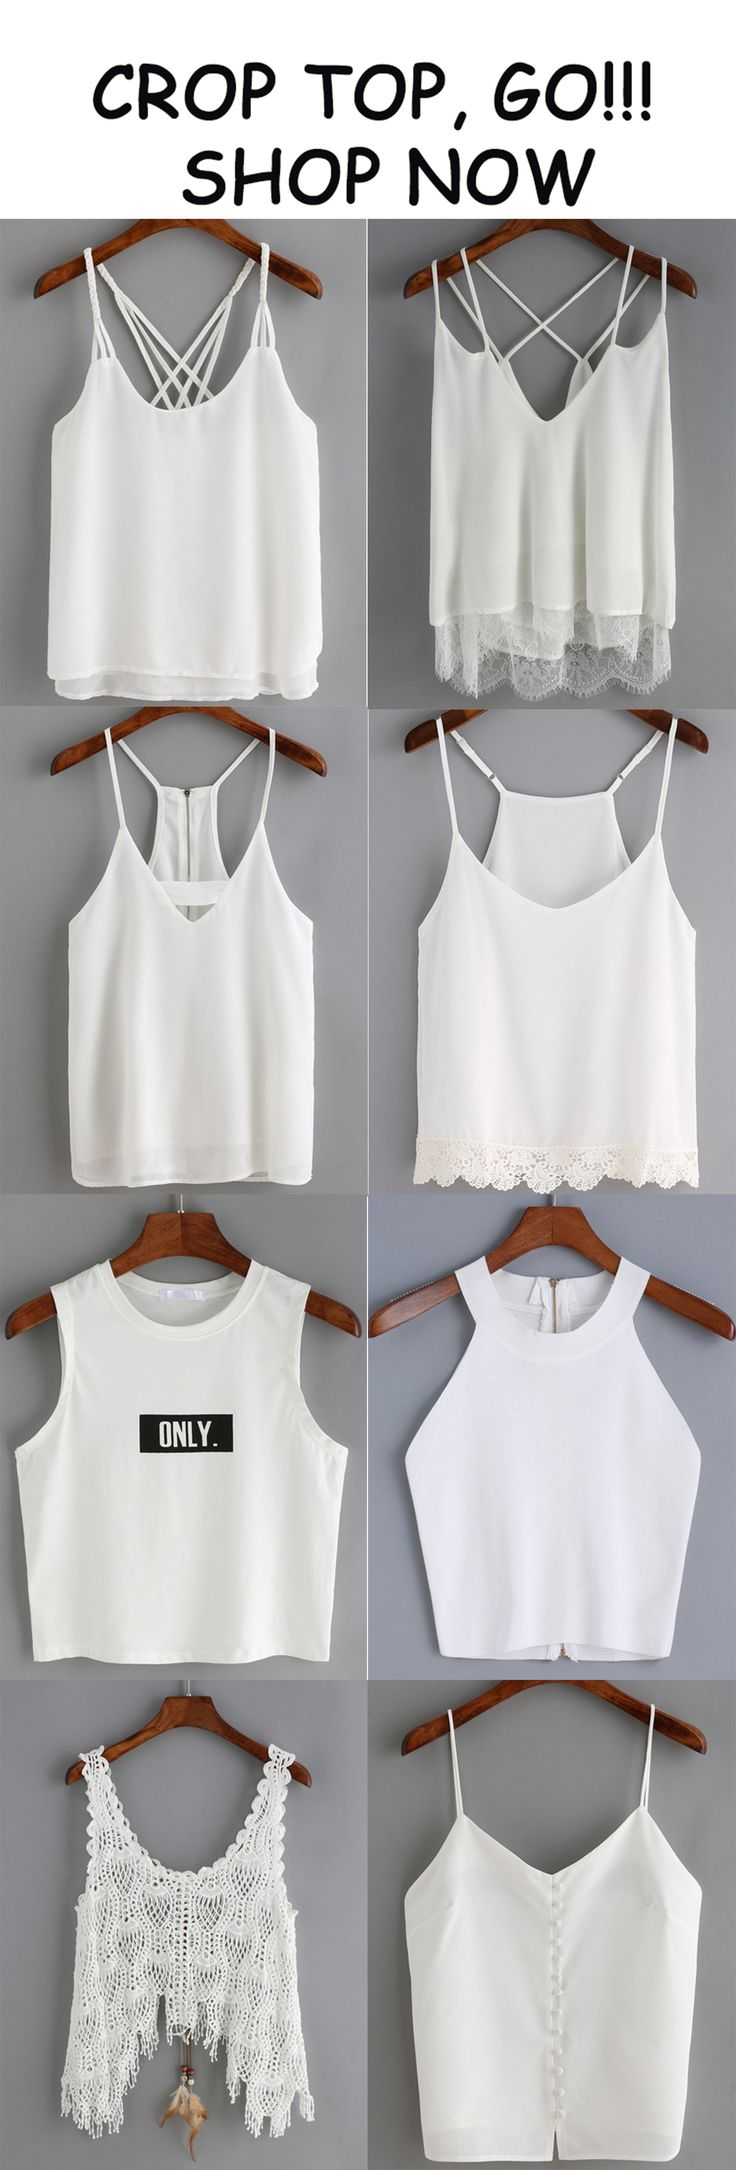 Summer is coming, and it's time to show your curve to the world. Wearing these white crop vests. Just enjoy your tour, bring the beach look to a new level!!!!